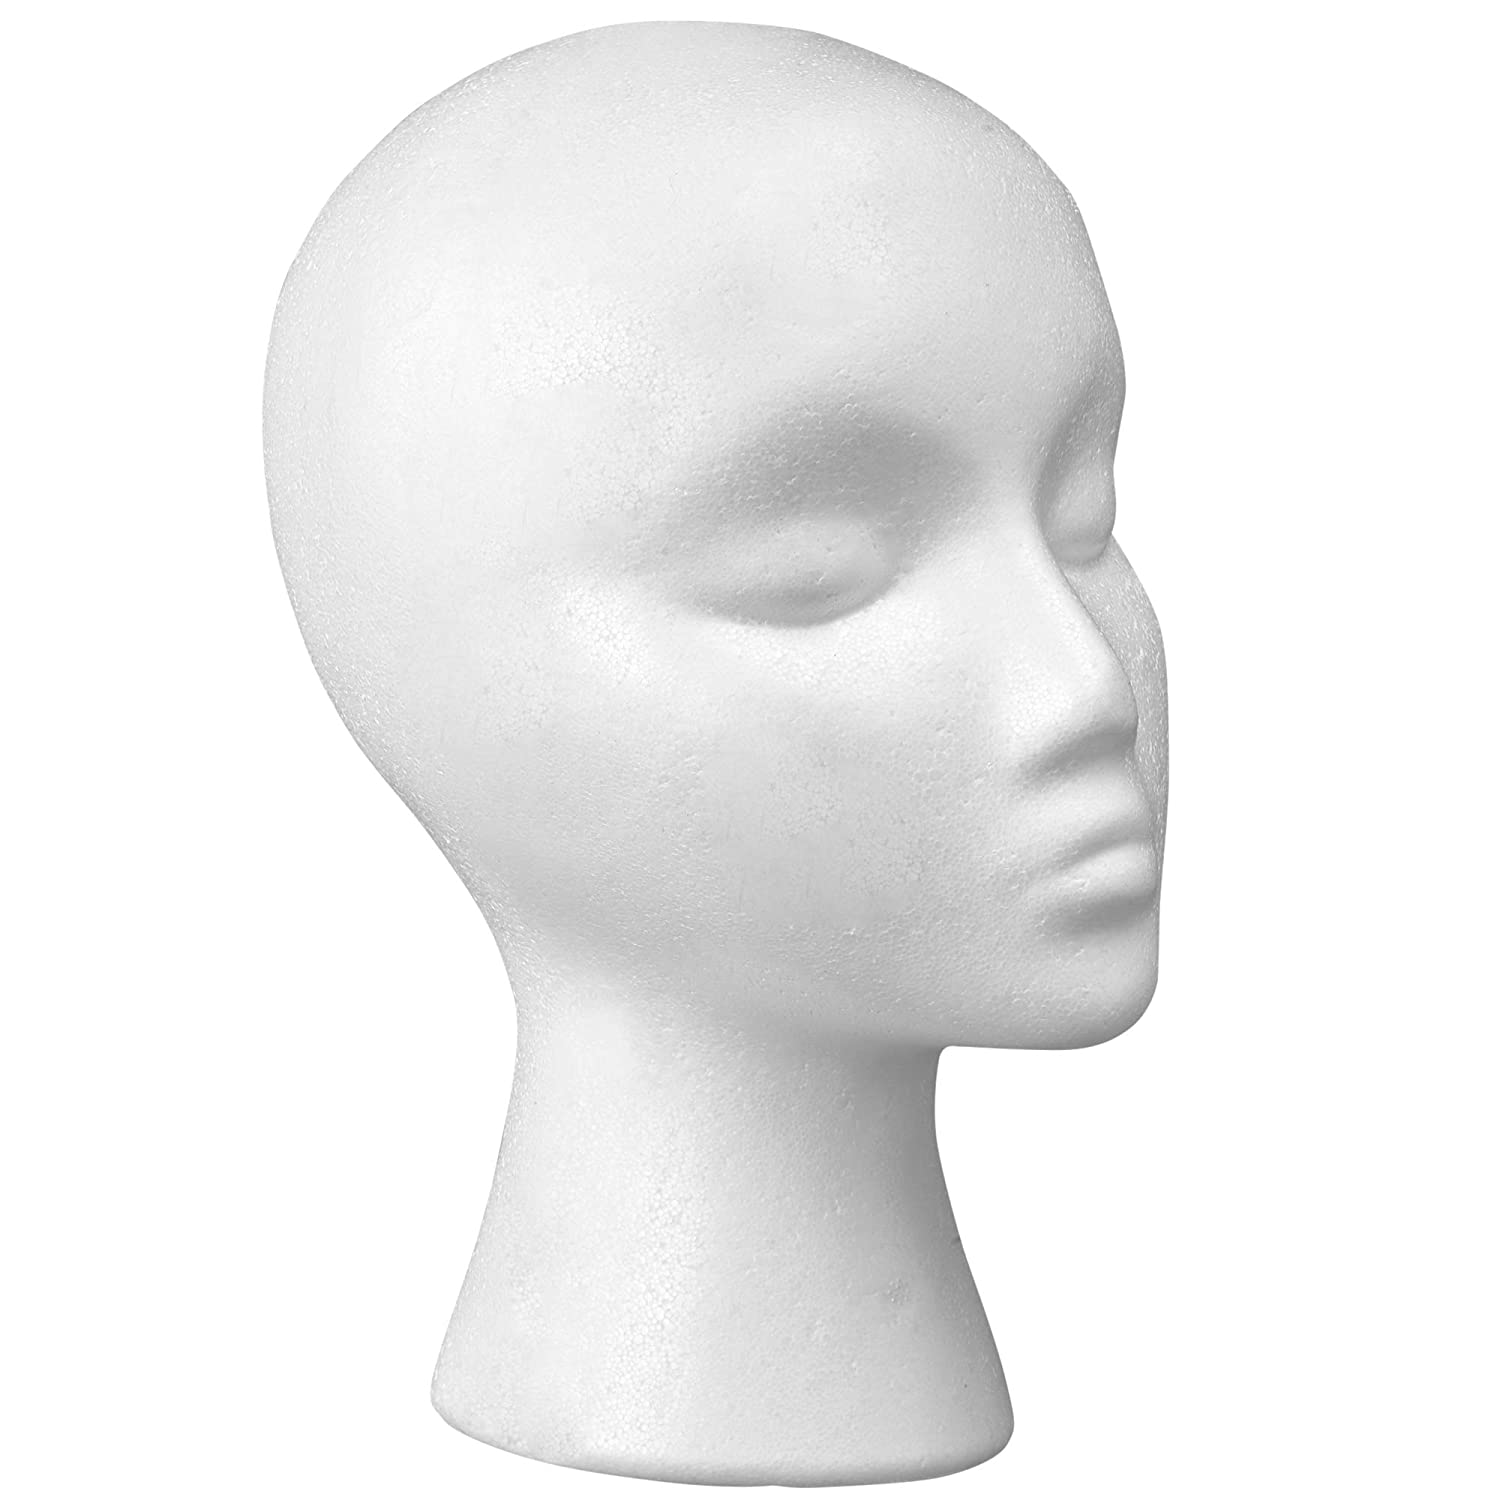 "12"" Styrofoam Wig Head - Tall Female Foam Mannequin Wig Stand and Holder - Style, Model And Display Hair, Hats and Hairpieces - For Home, Salon and Travel - by Cantor"